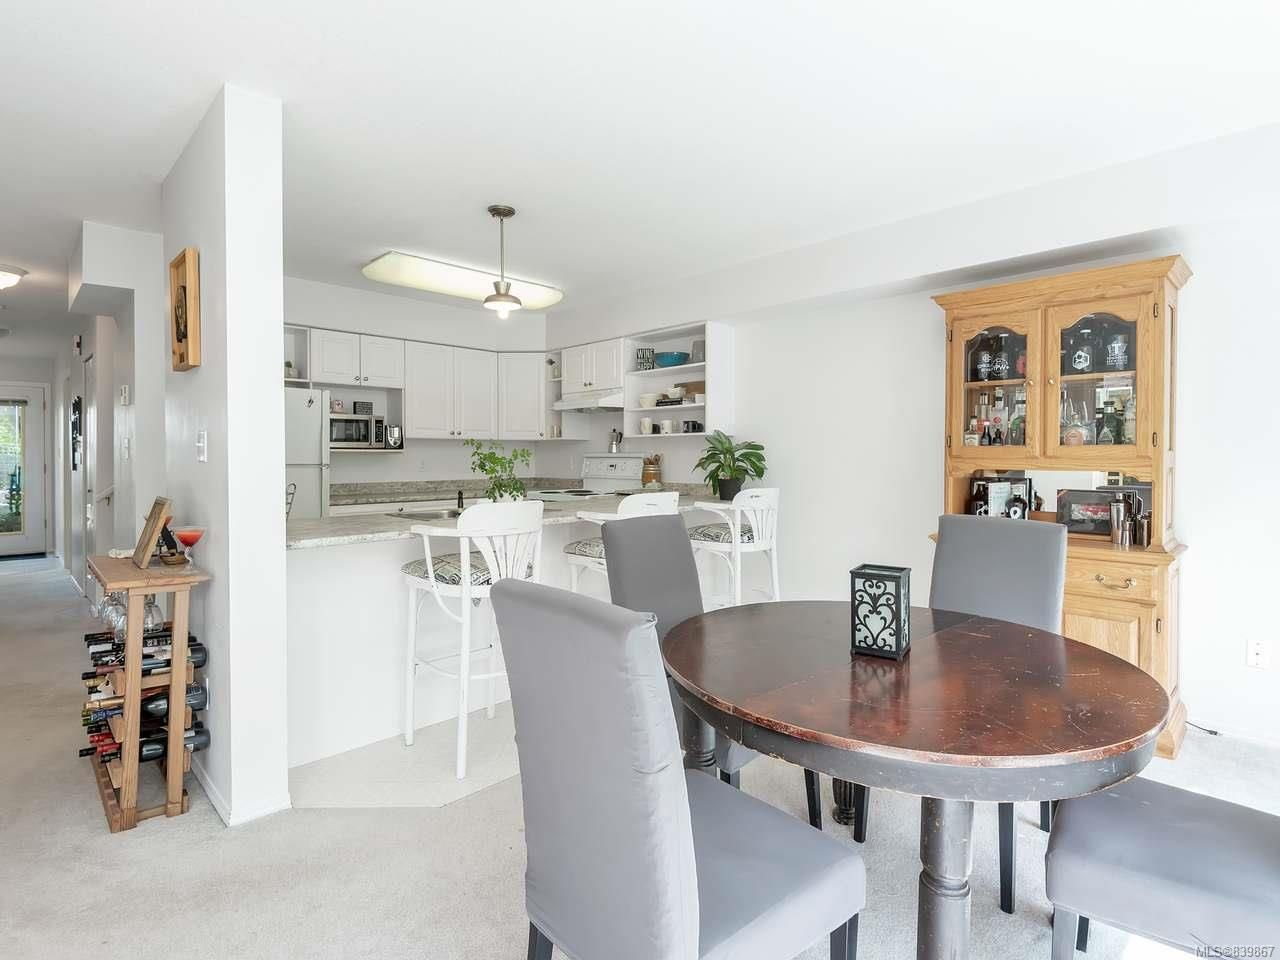 Photo 15: Photos: 21 2750 Denman St in CAMPBELL RIVER: CR Willow Point Row/Townhouse for sale (Campbell River)  : MLS®# 839867